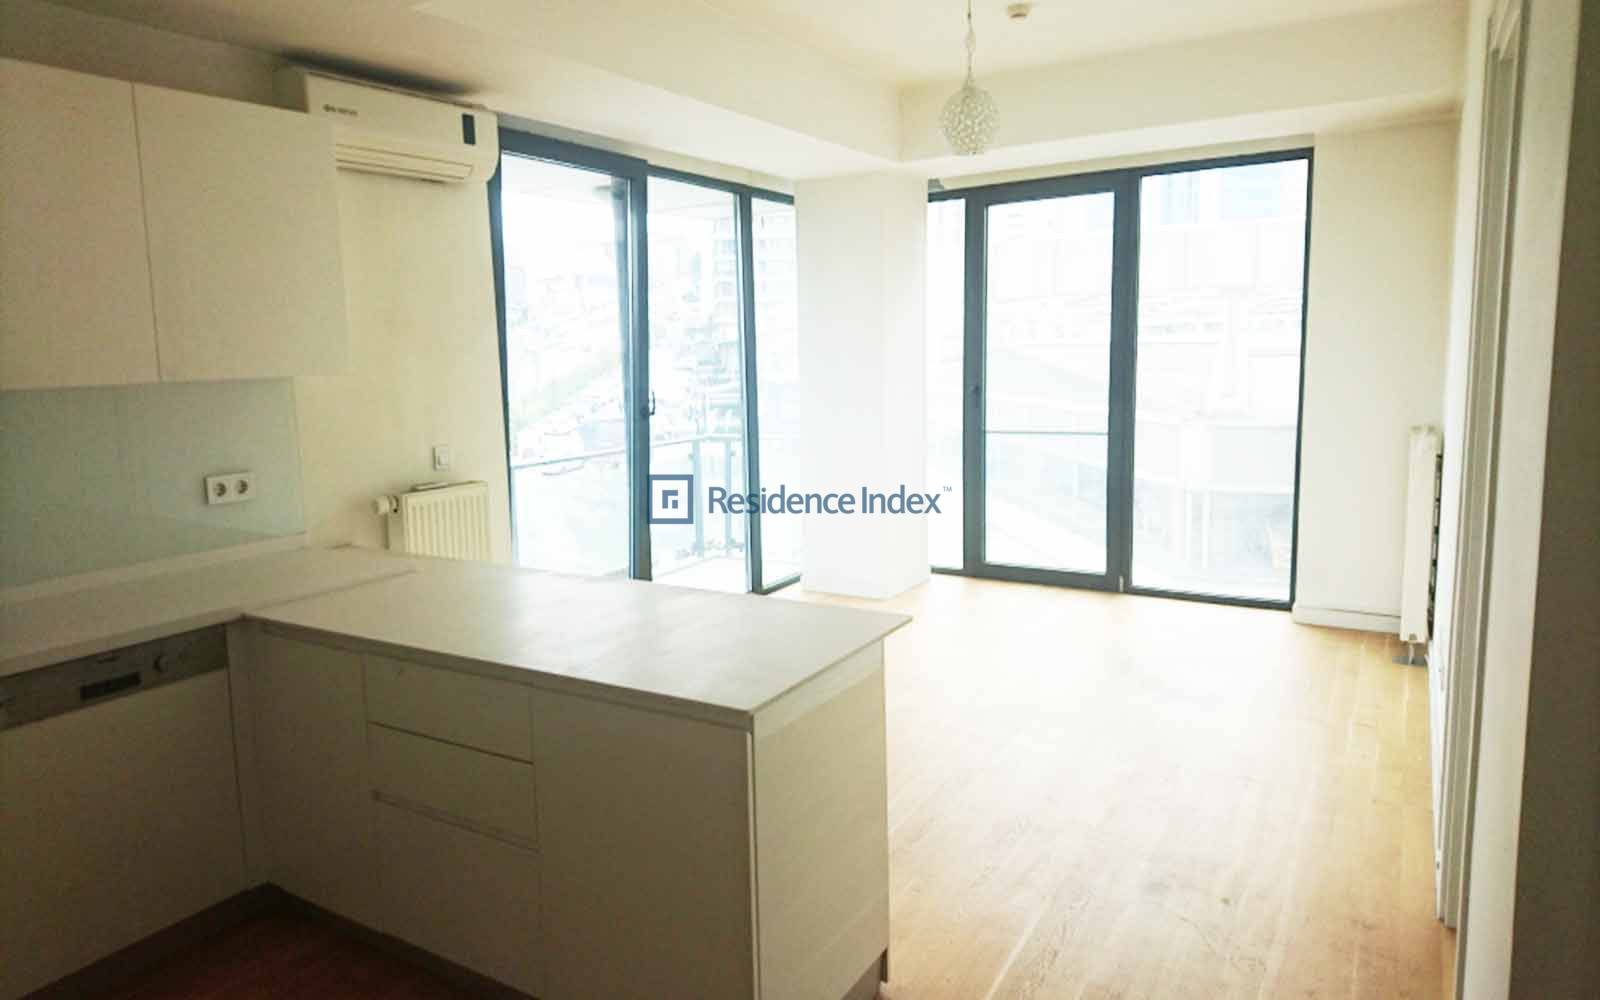 Opportunity 1 + 1 apartment for rent